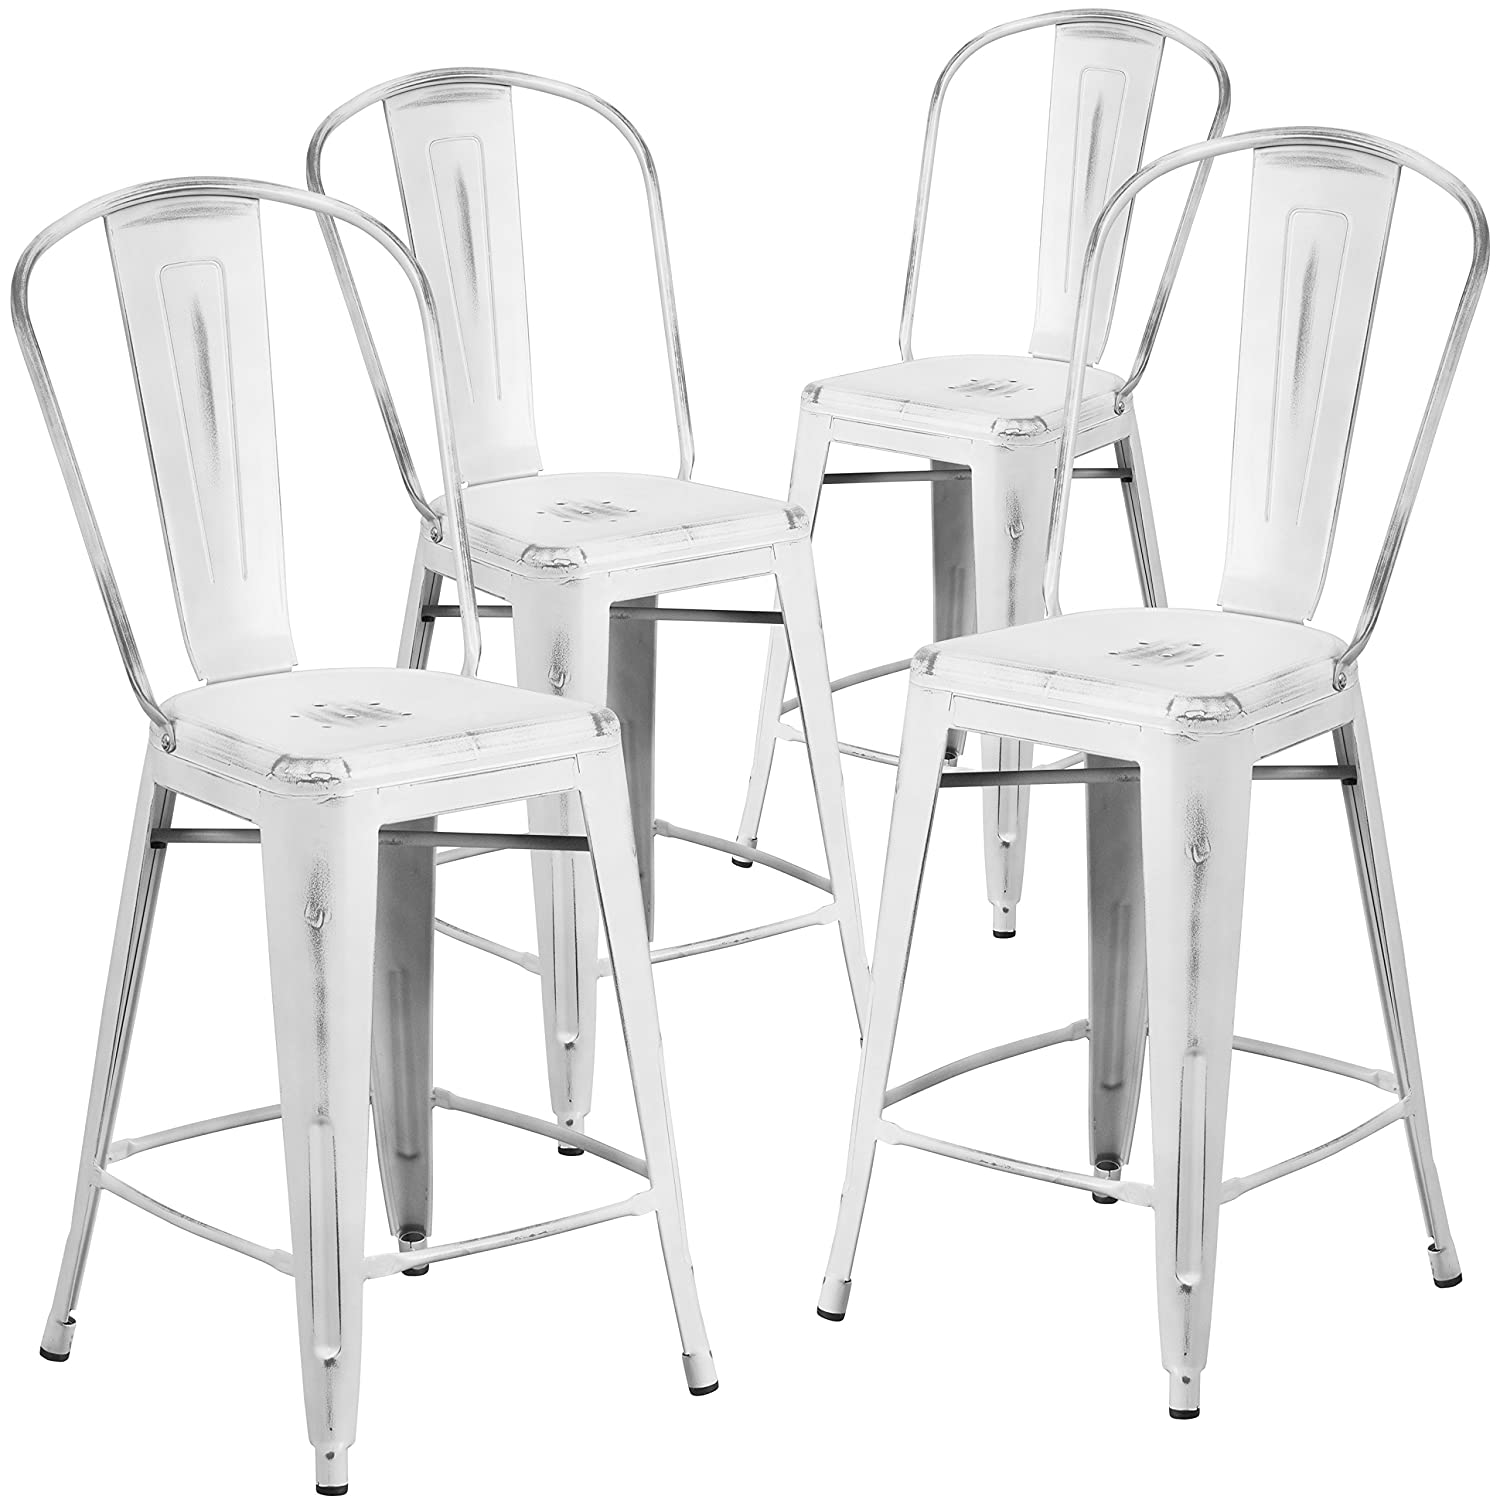 Amazon.com: Flash Furniture 4 Pk. 24u0027u0027 High Distressed White Metal  Indoor Outdoor Counter Height Stool With Back: Kitchen U0026 Dining